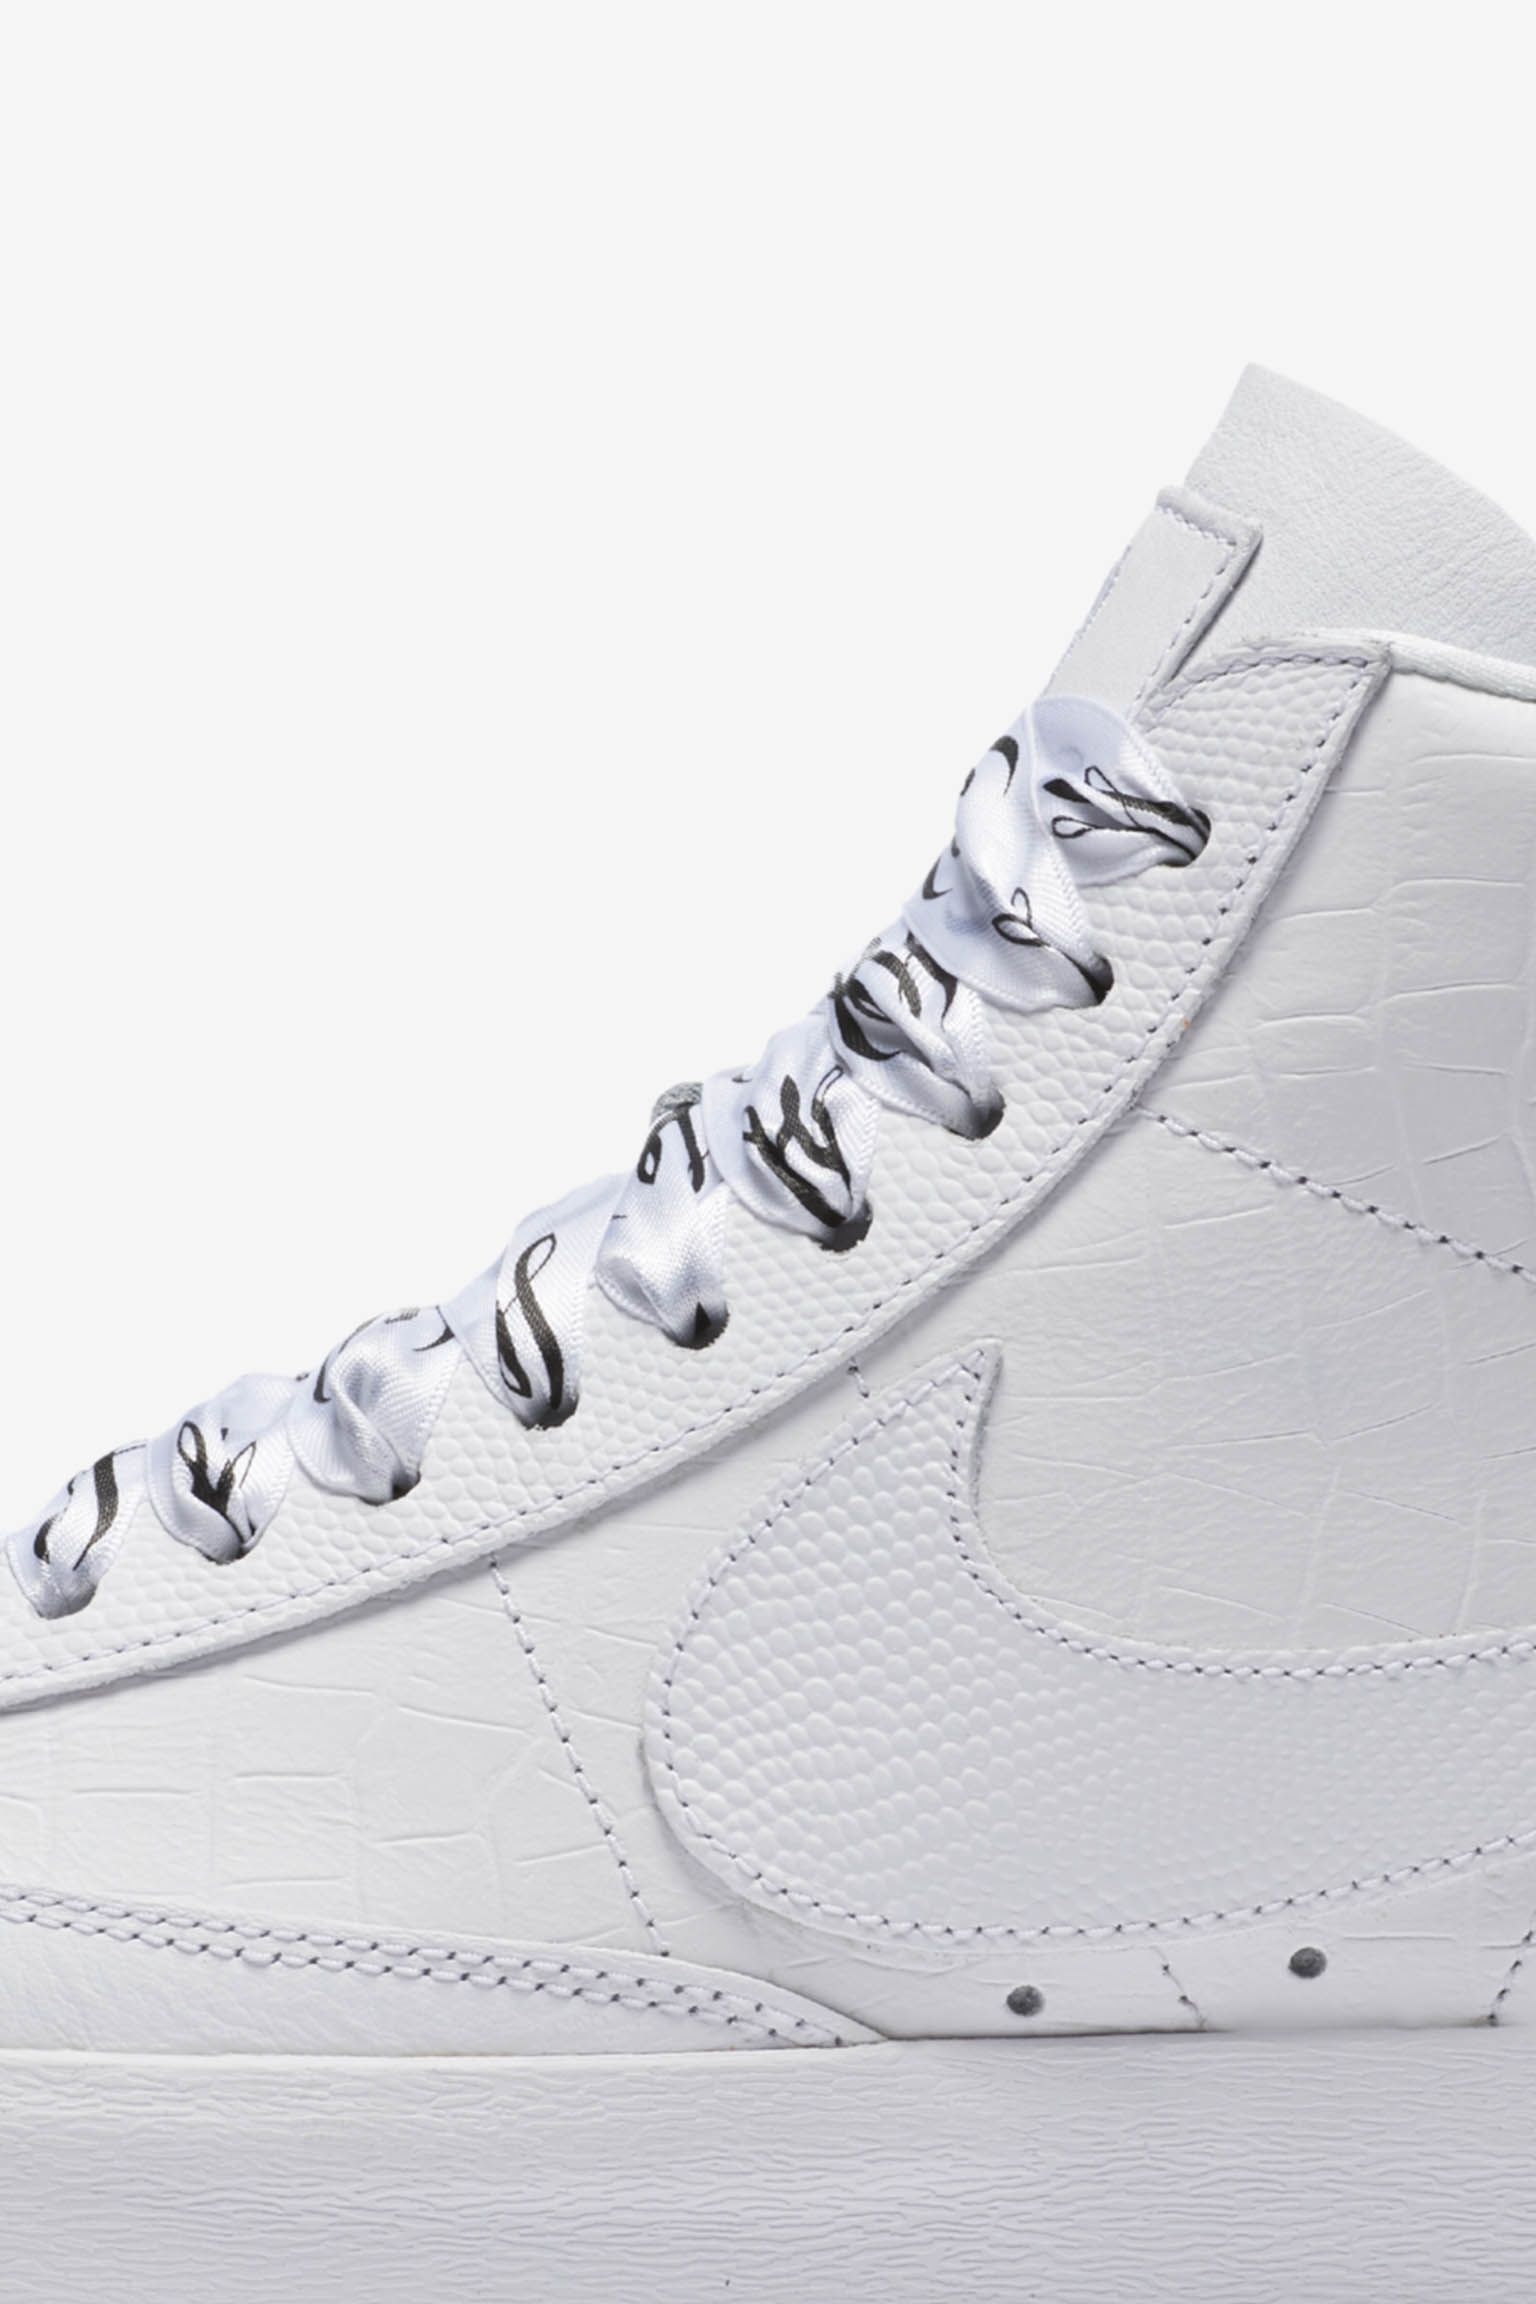 Nike Women's Blazer Mid 'Serena Williams' Release Date